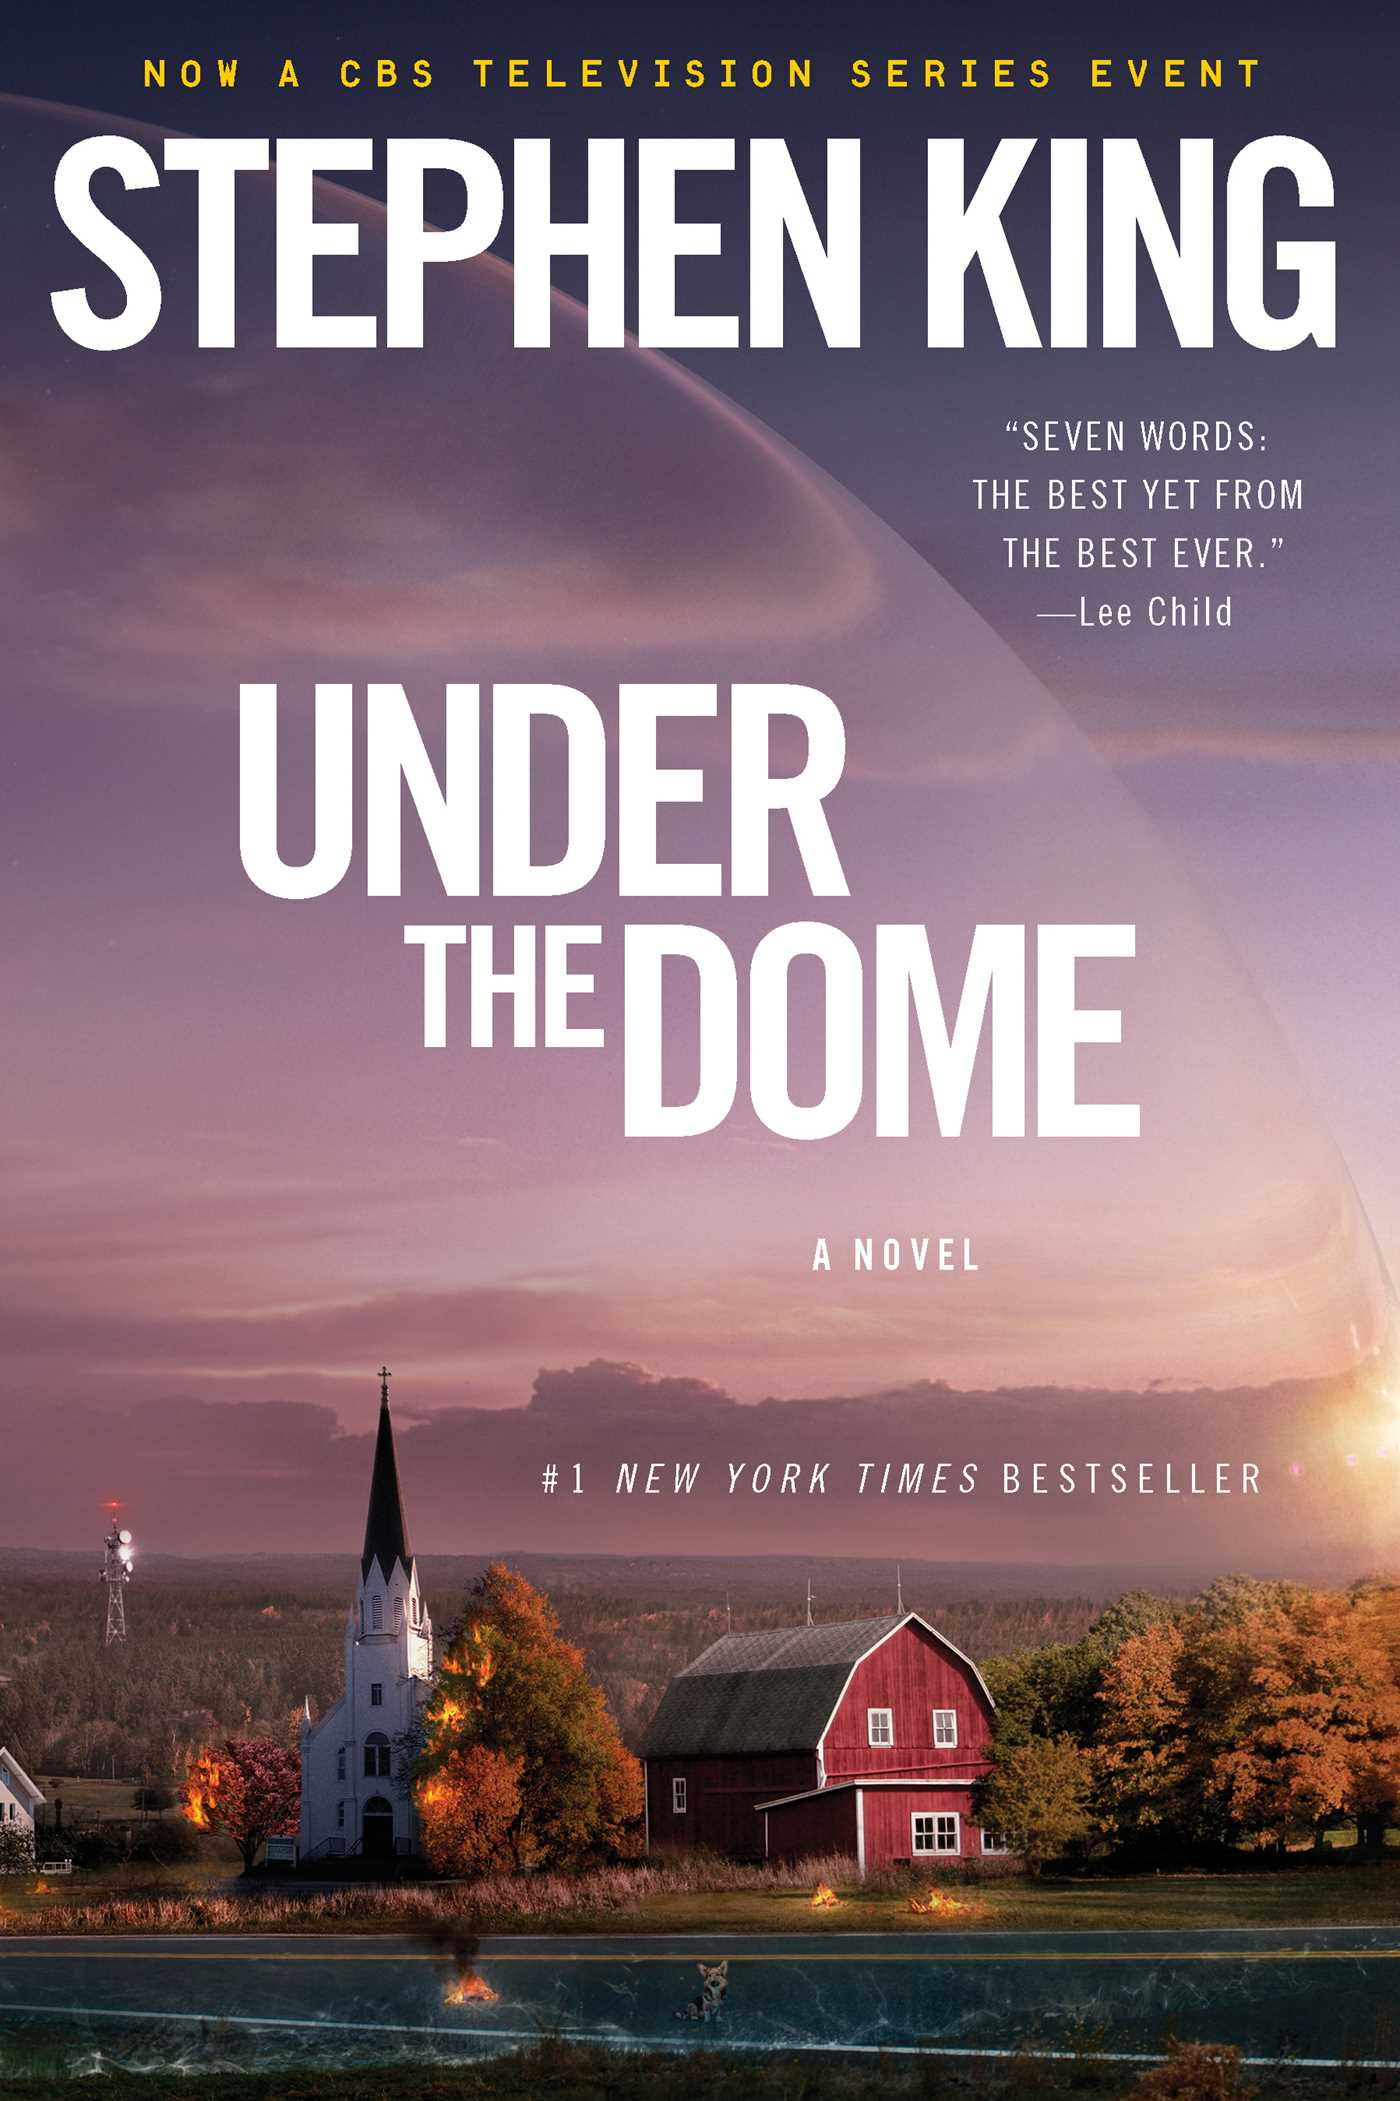 Under the dome 9781439168035 hr